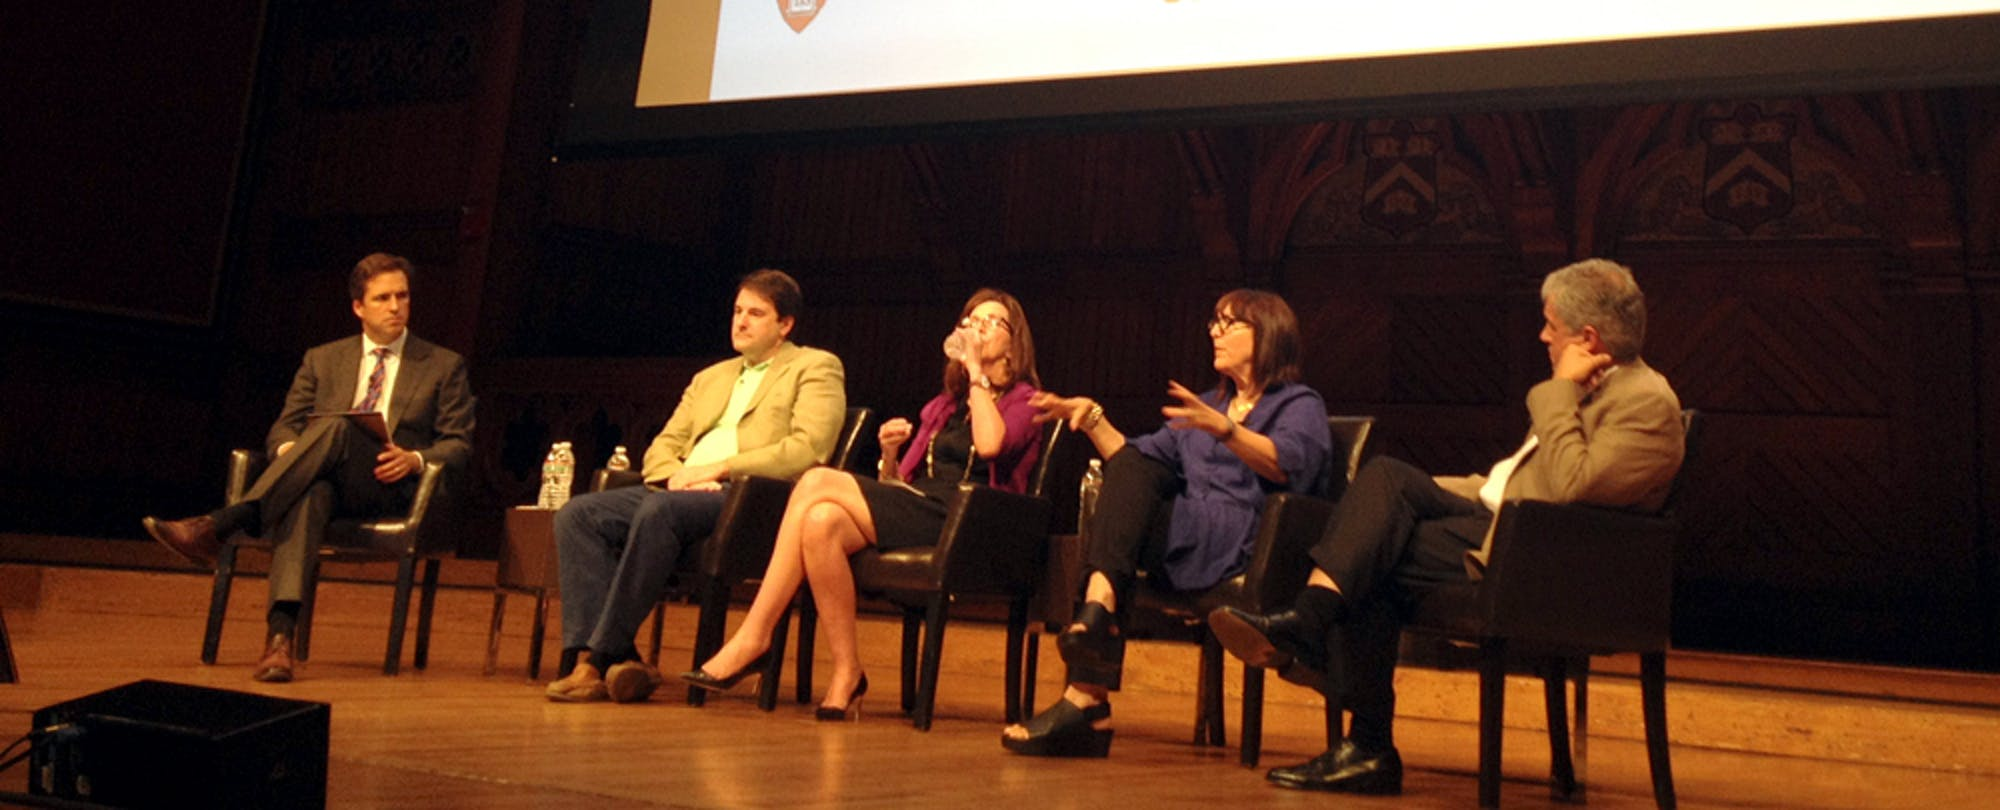 Goldman Sachs Conference Delivers Promises of Accessible, Quality Education